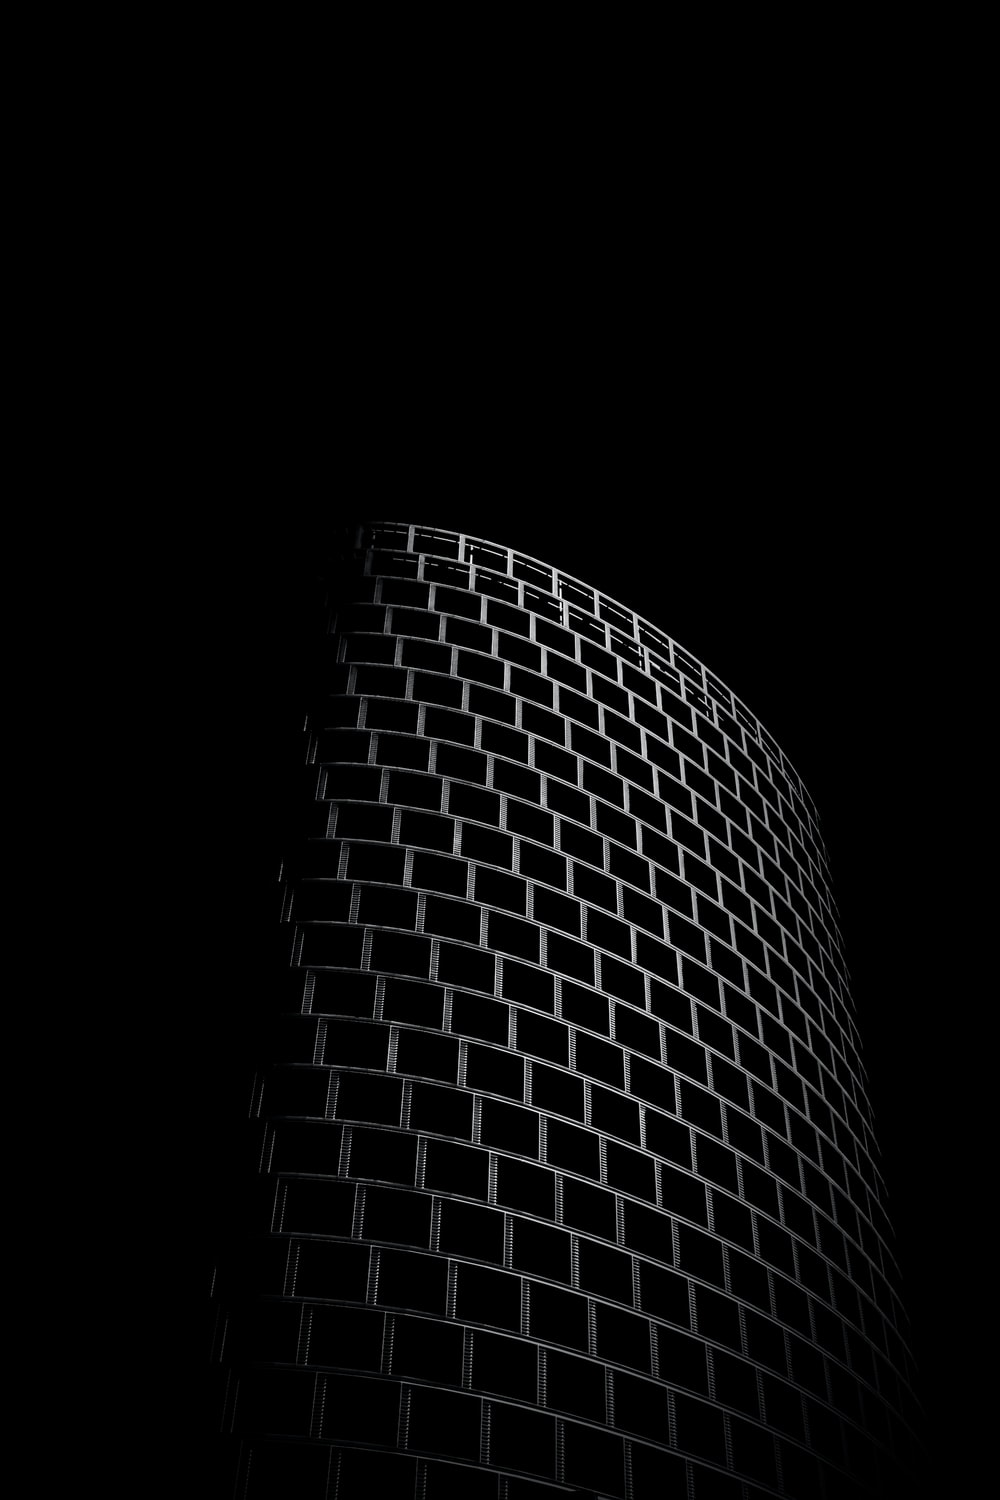 AMOLED Wallpapers [Free Download ]